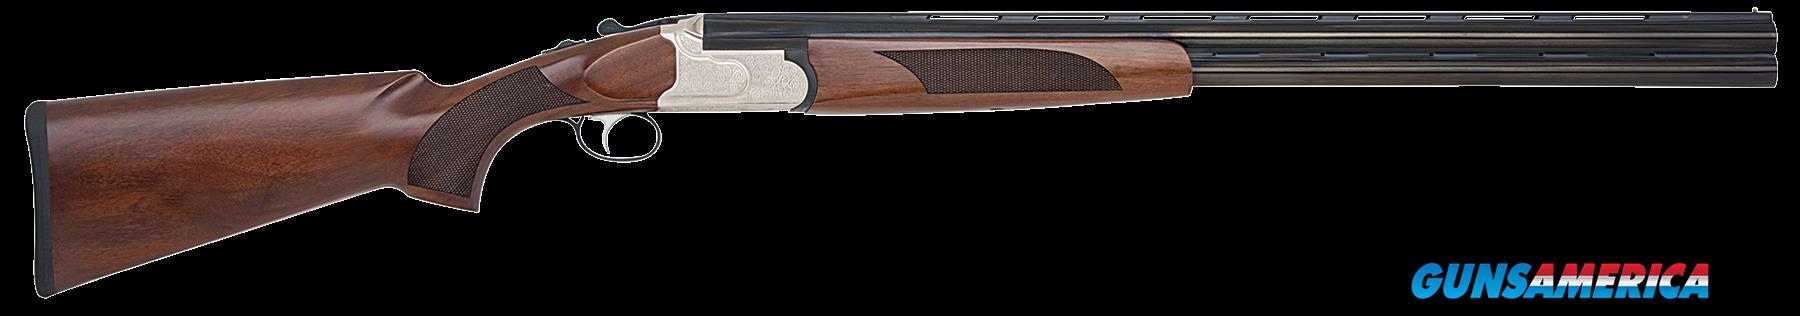 "Mossberg 75412 Silver Reserve II Field with Extractors Over/Under 12 Gauge 28"" 3"" Black Walnut Stk  Guns > Shotguns > Mossberg Shotguns > Over/Under"